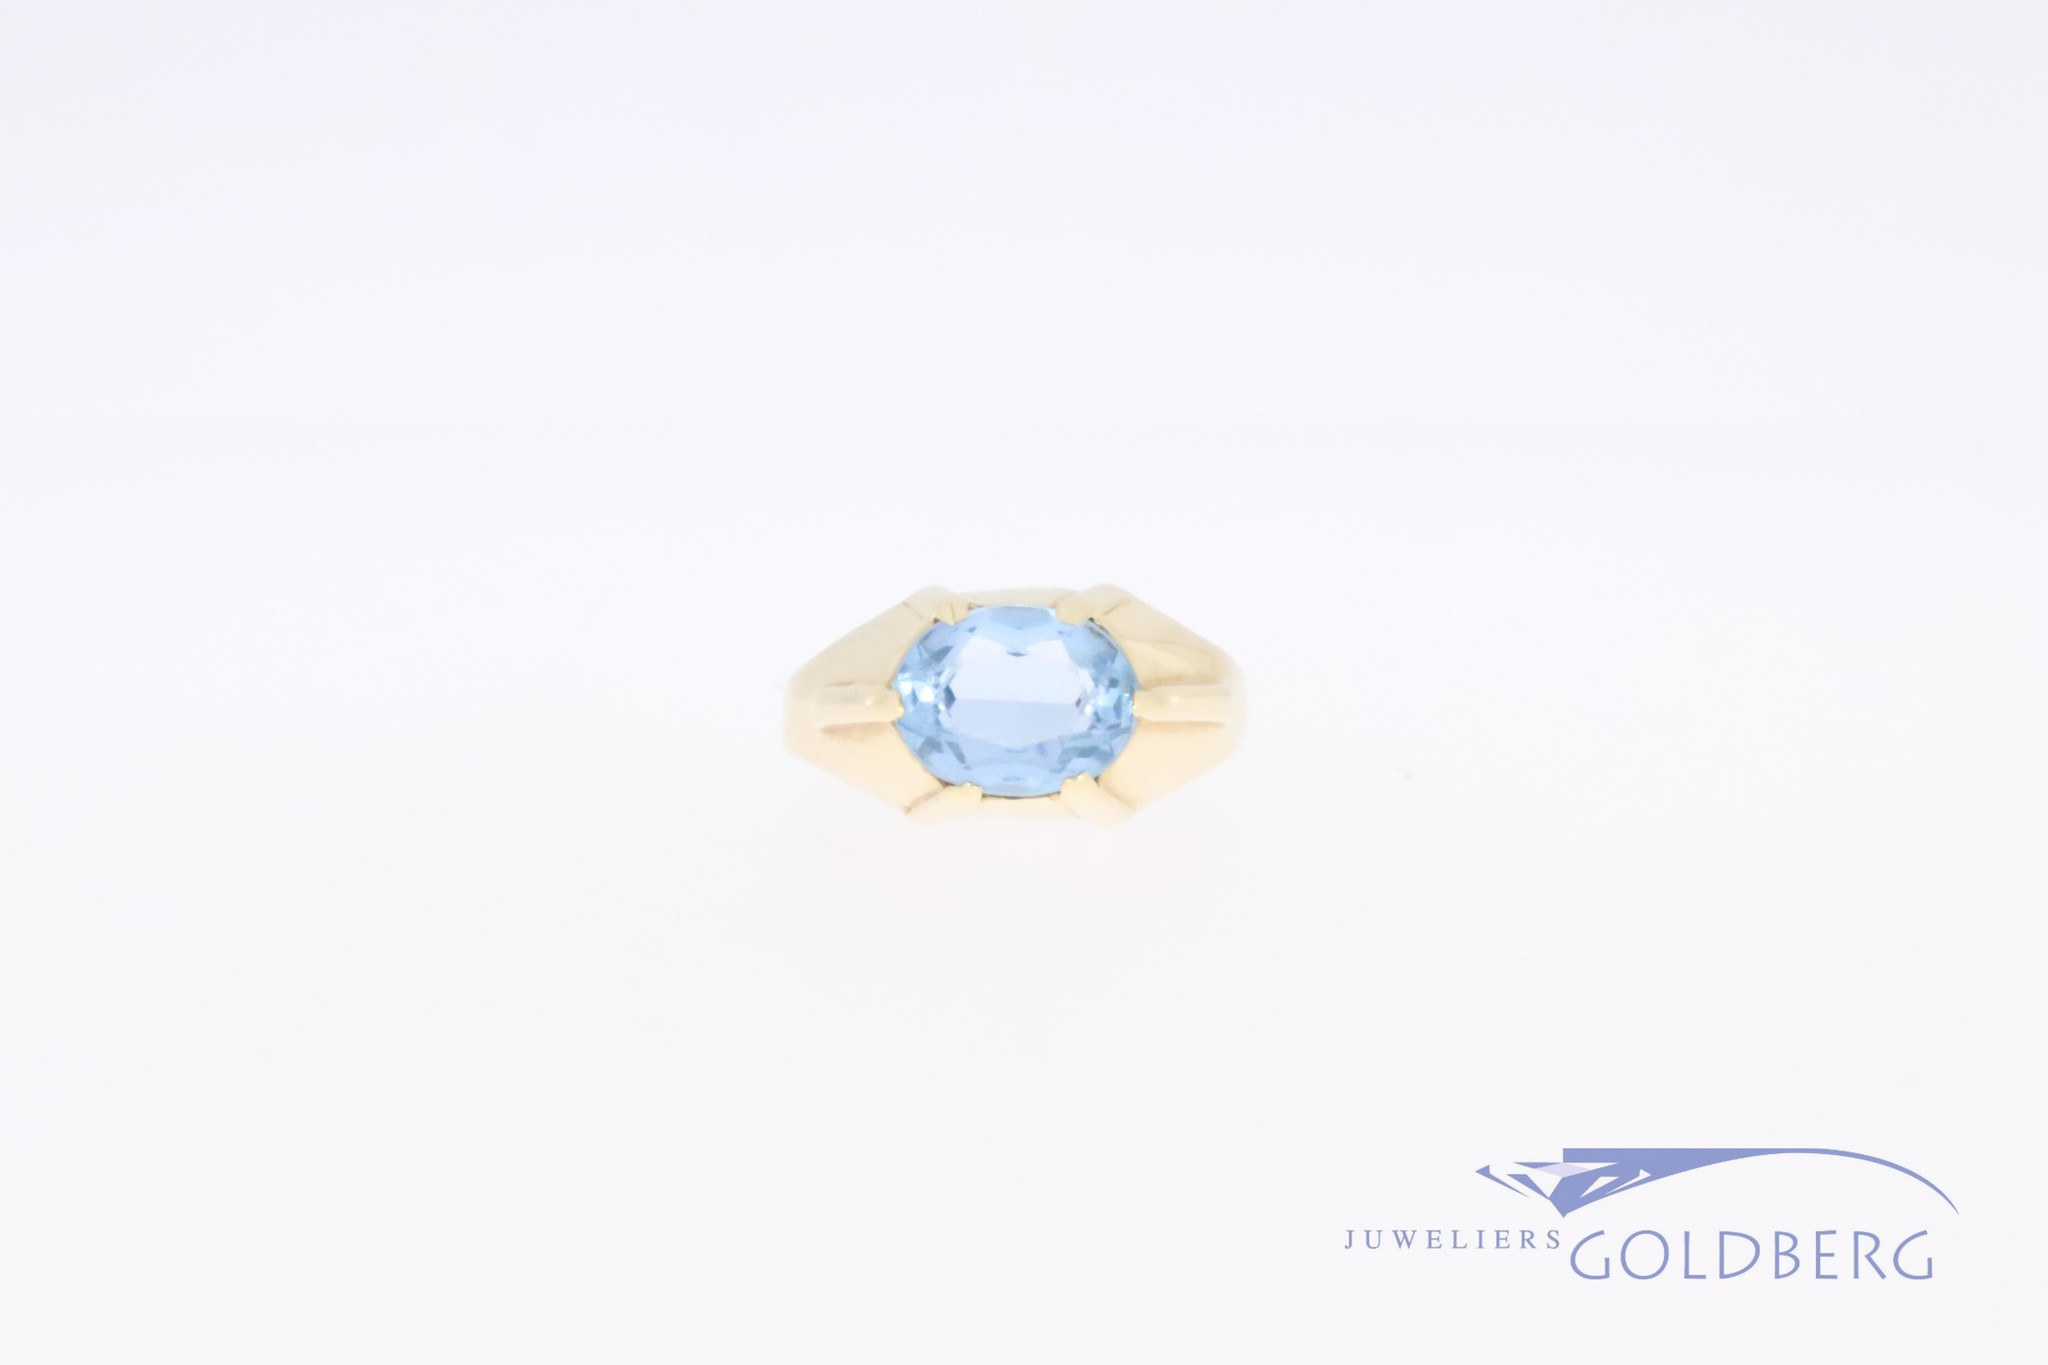 Vintage 14k gold, high ring with aquamarine-colored synthetic spinel